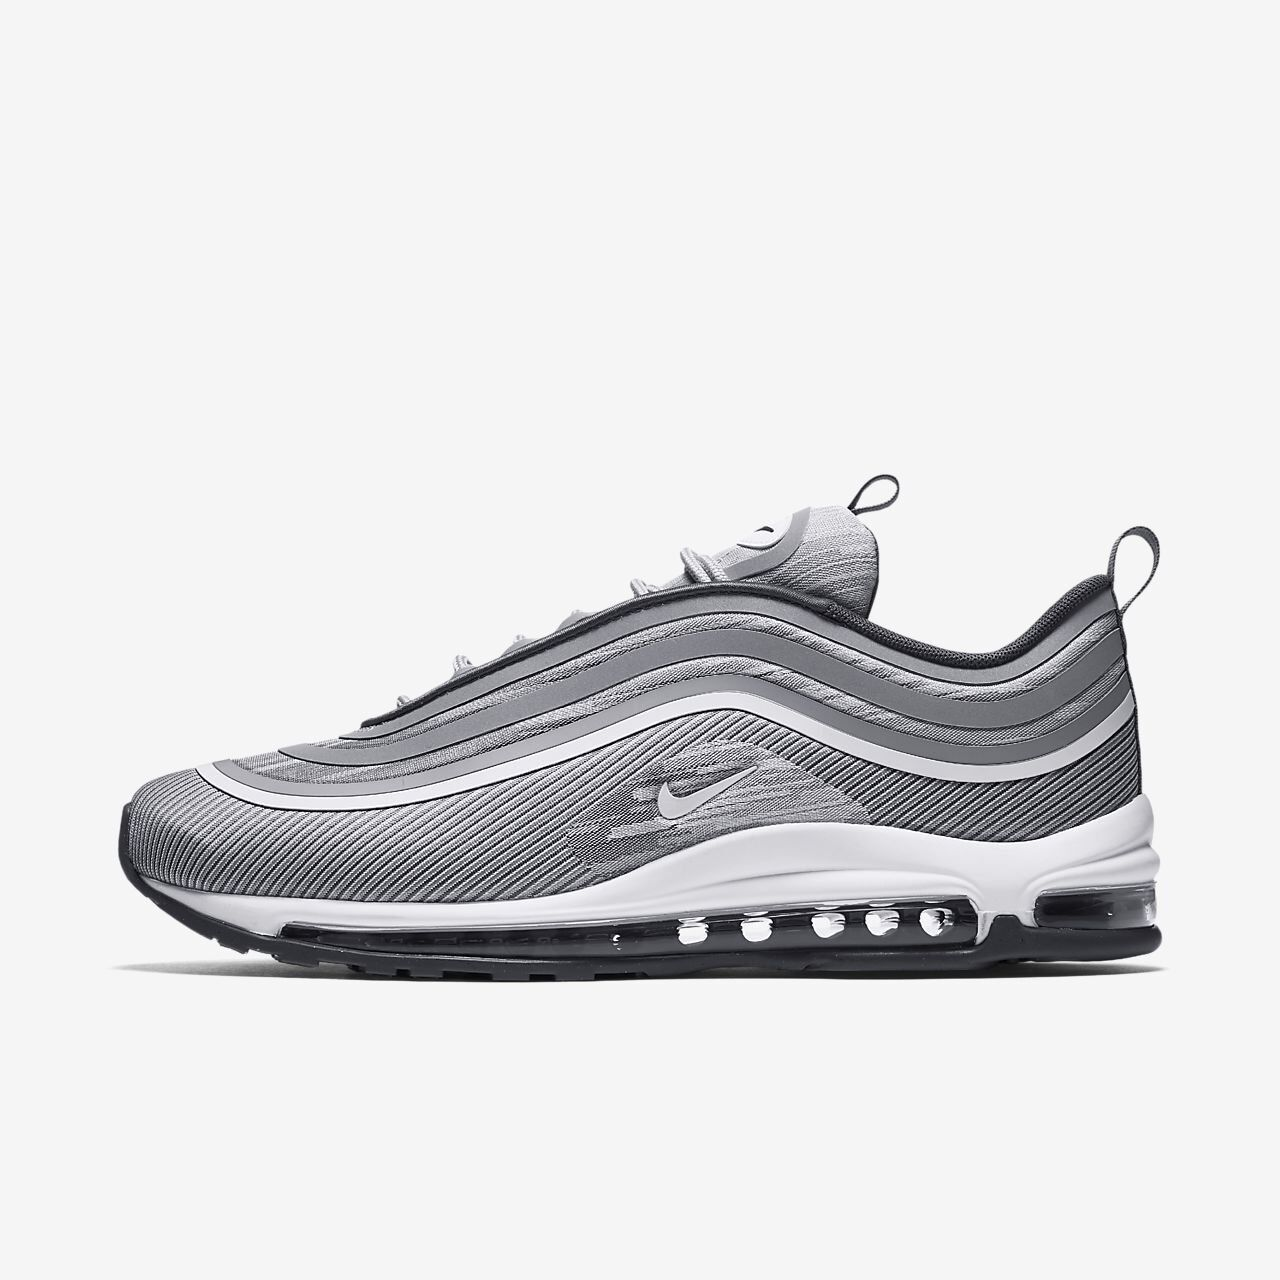 Nike Men Air Max 97 Ultra '17 Running Shoes 918356-007 US7-11 Cheap and beautiful fashion